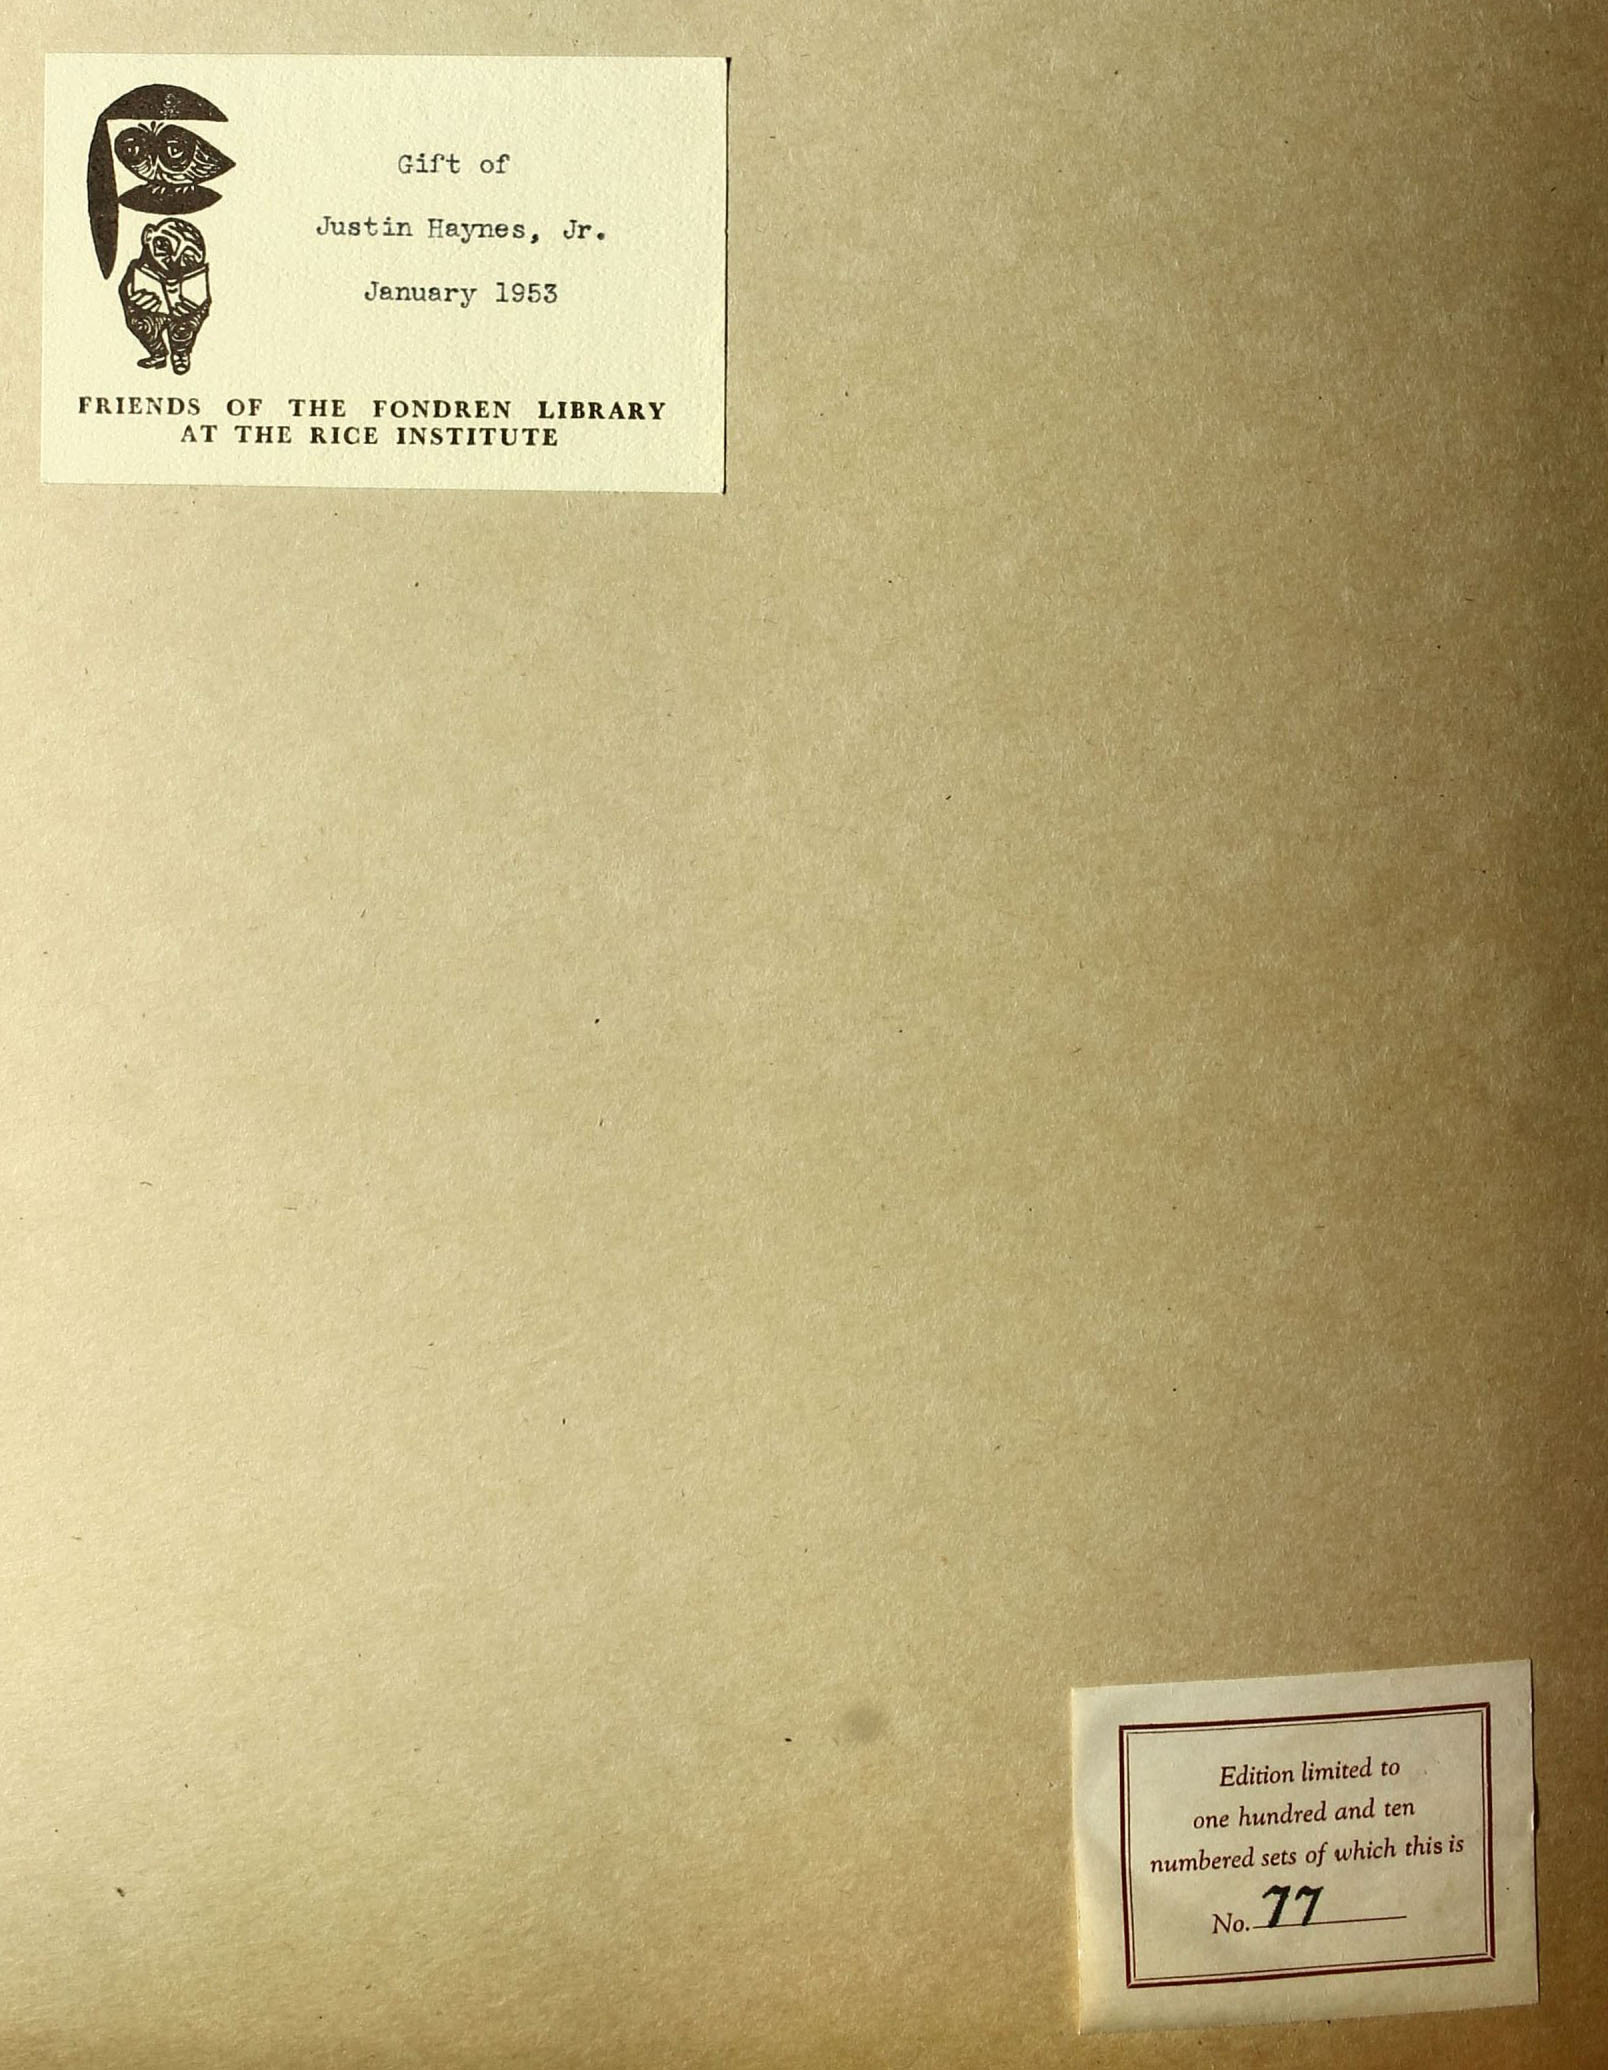 Book donated in January of 1953. It is number 77 of 110.